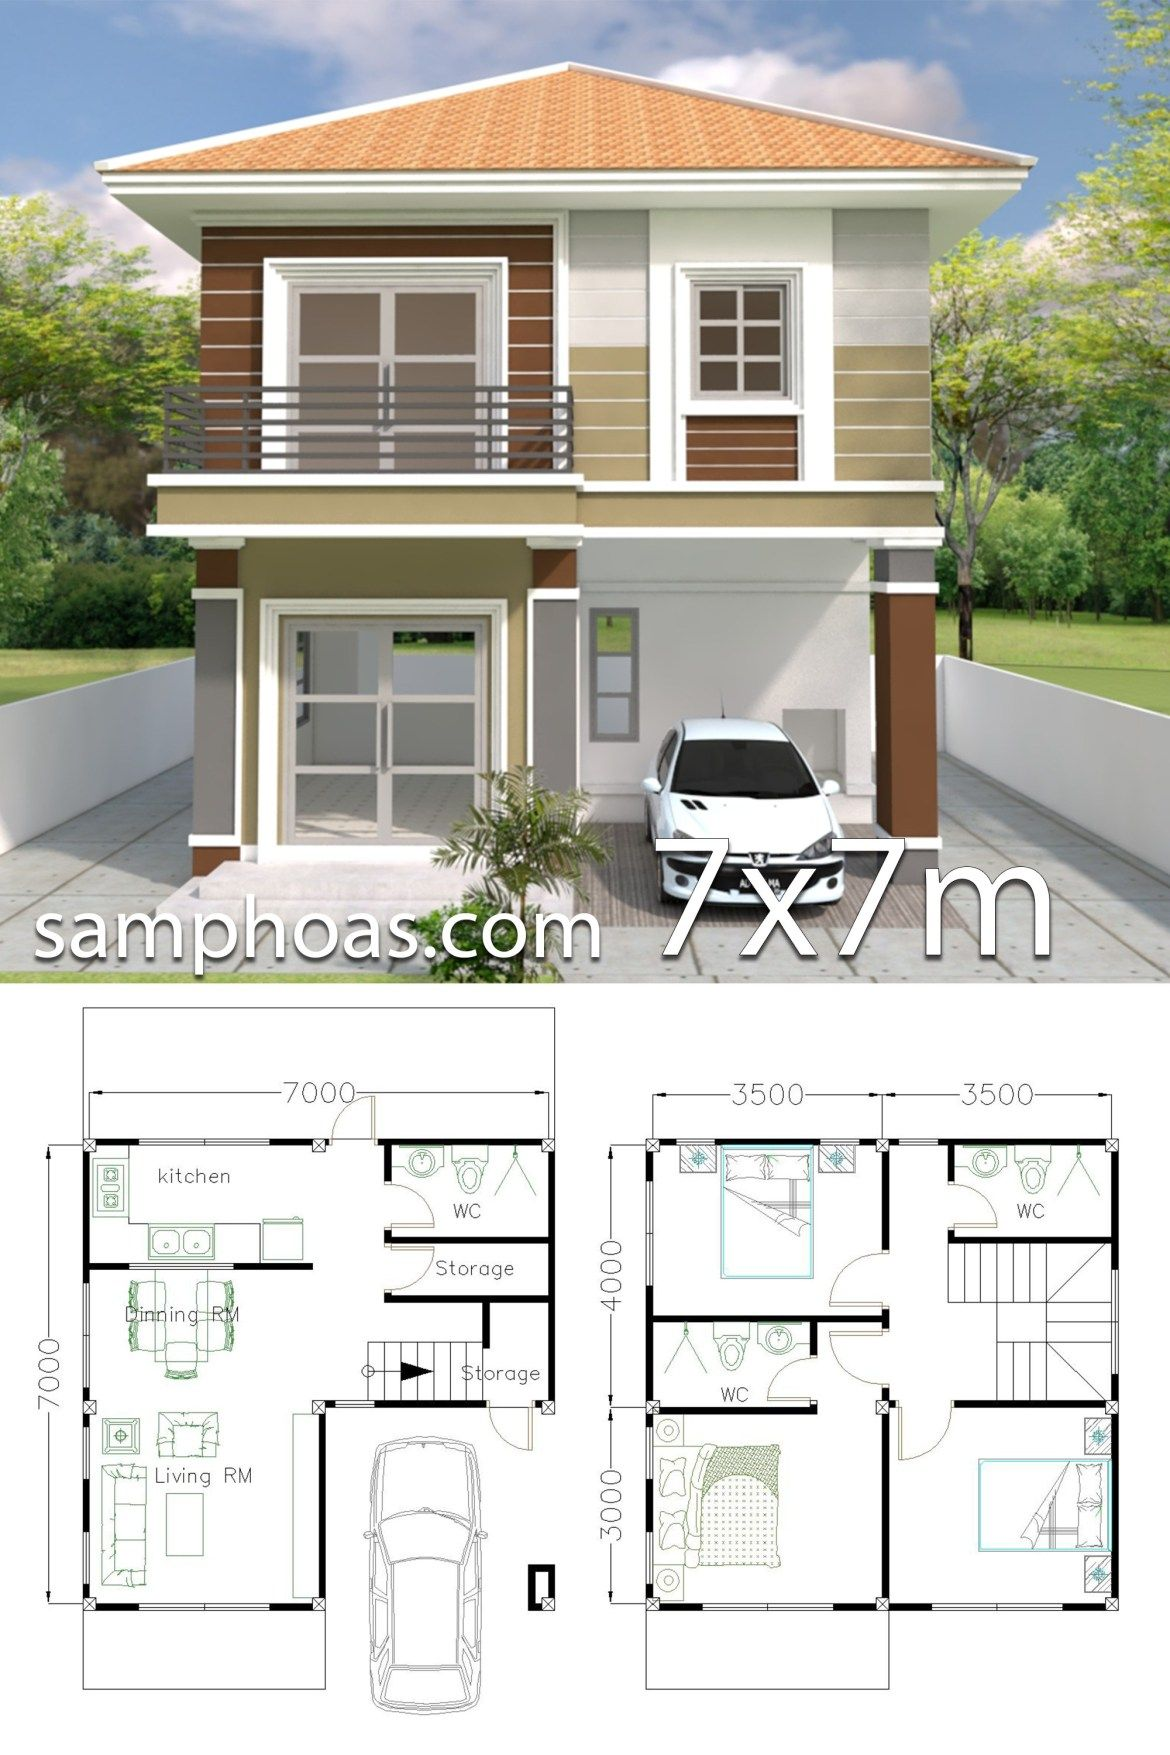 Home Design Plan 7x7m With 3 Bedrooms Samphoas Plansearch House Blueprints House Construction Plan Home Design Plan